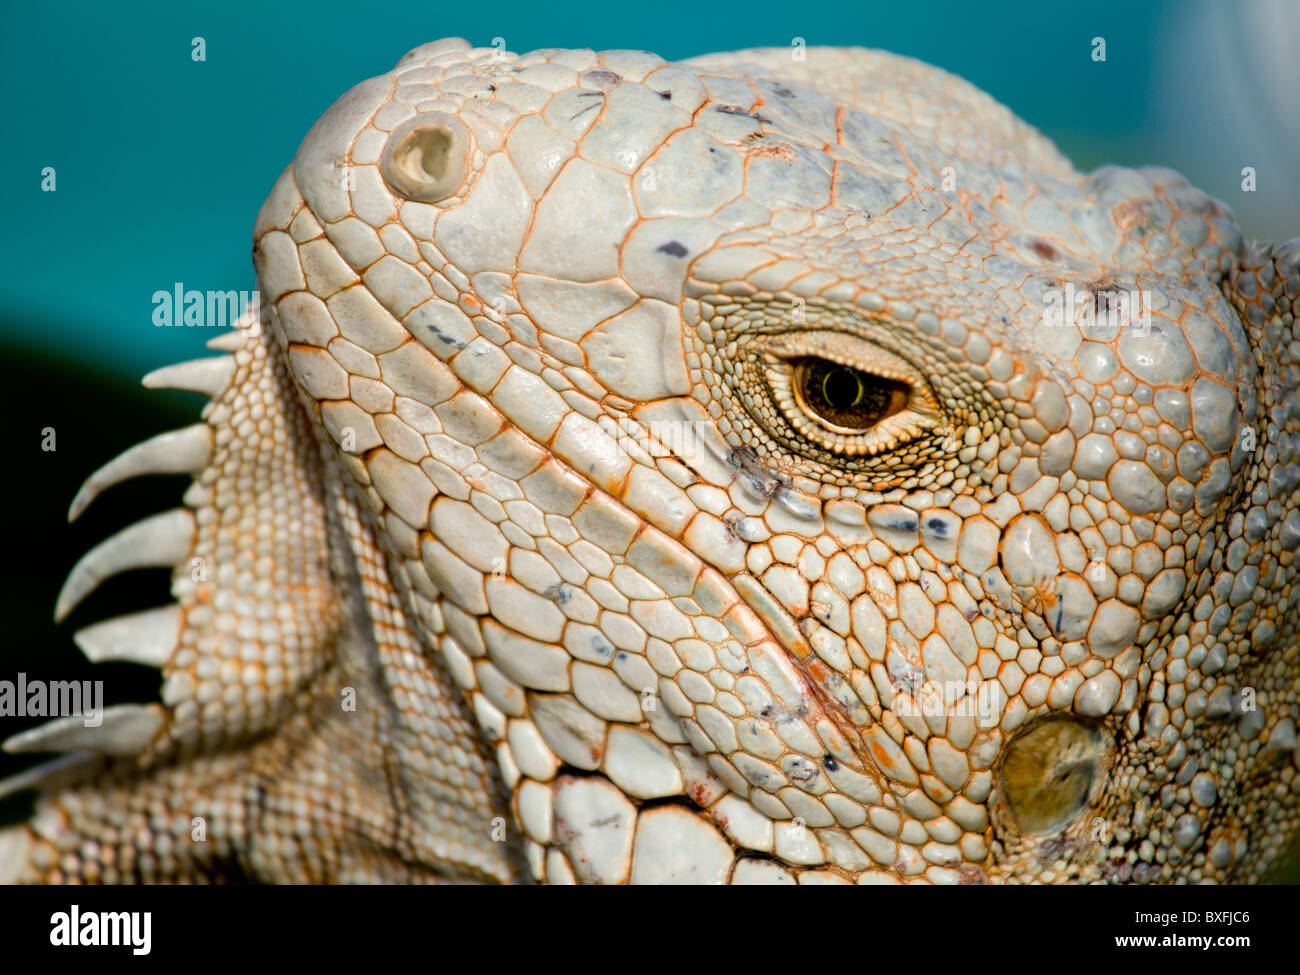 Green Iguana with scaly neck and mouth - Stock Image